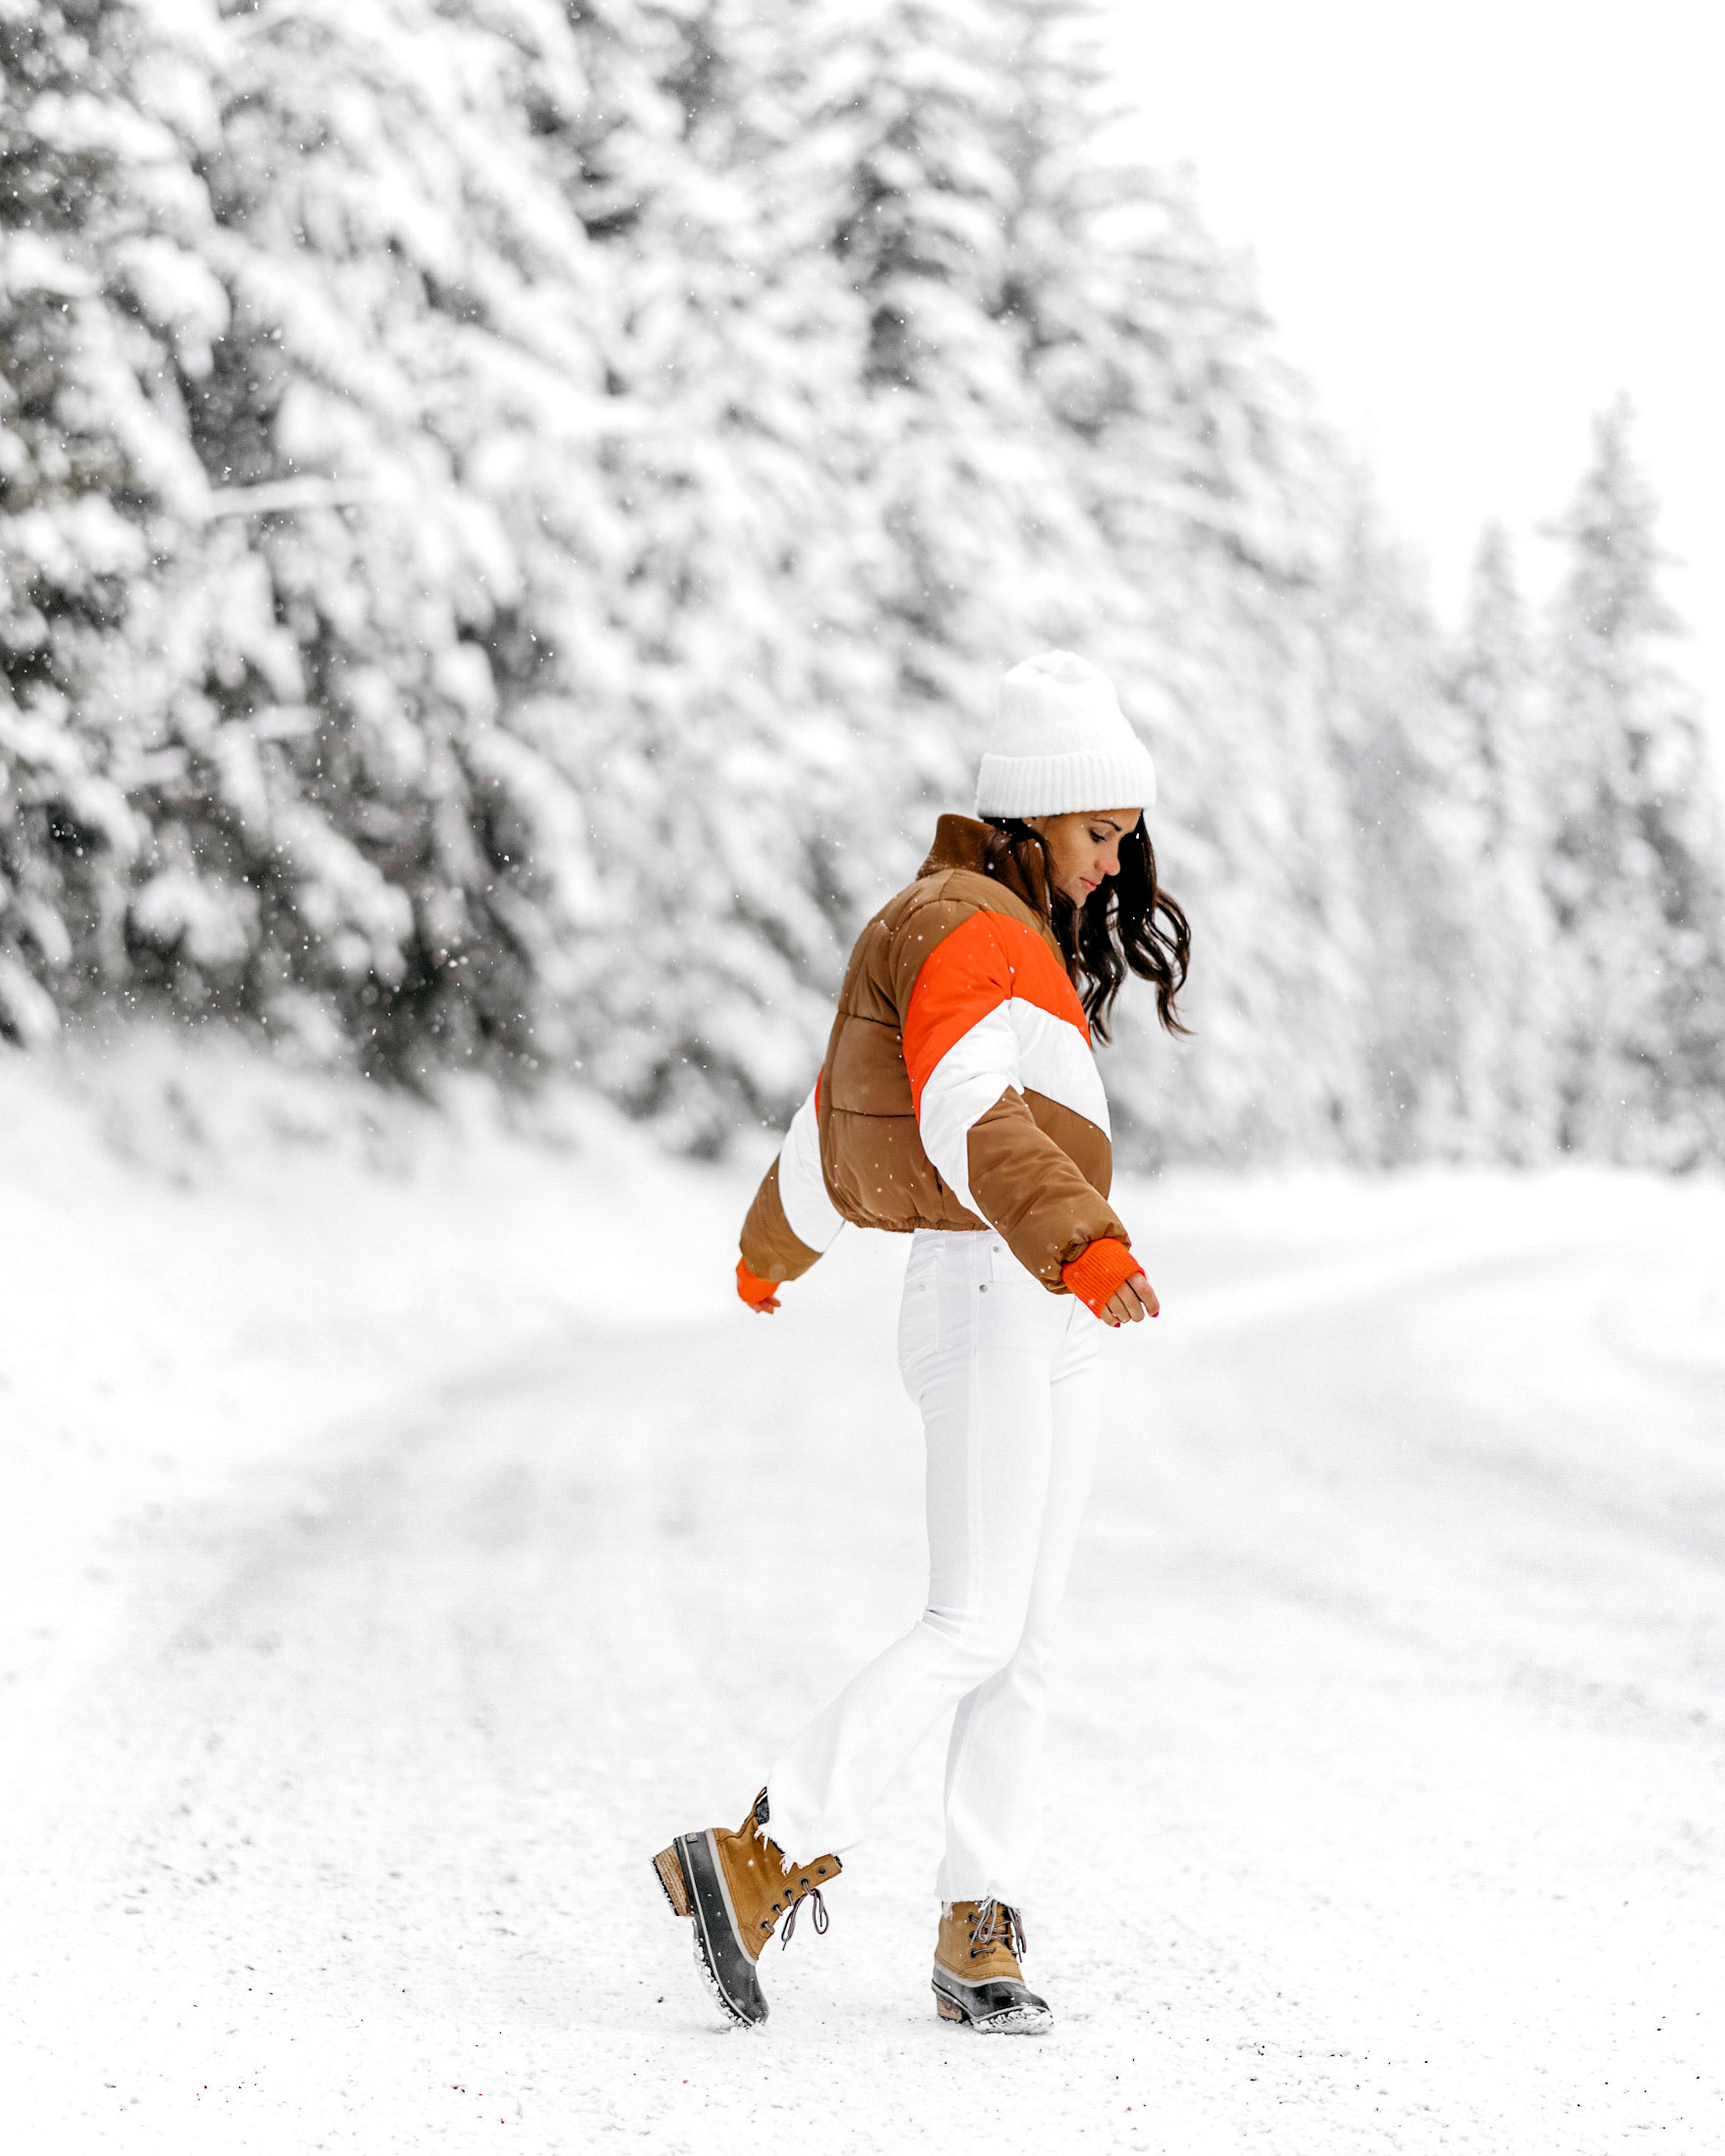 apres-ski-sweater-striped-vintage-puffer-coat-winter-snow-outfit-whistler-6.jpg